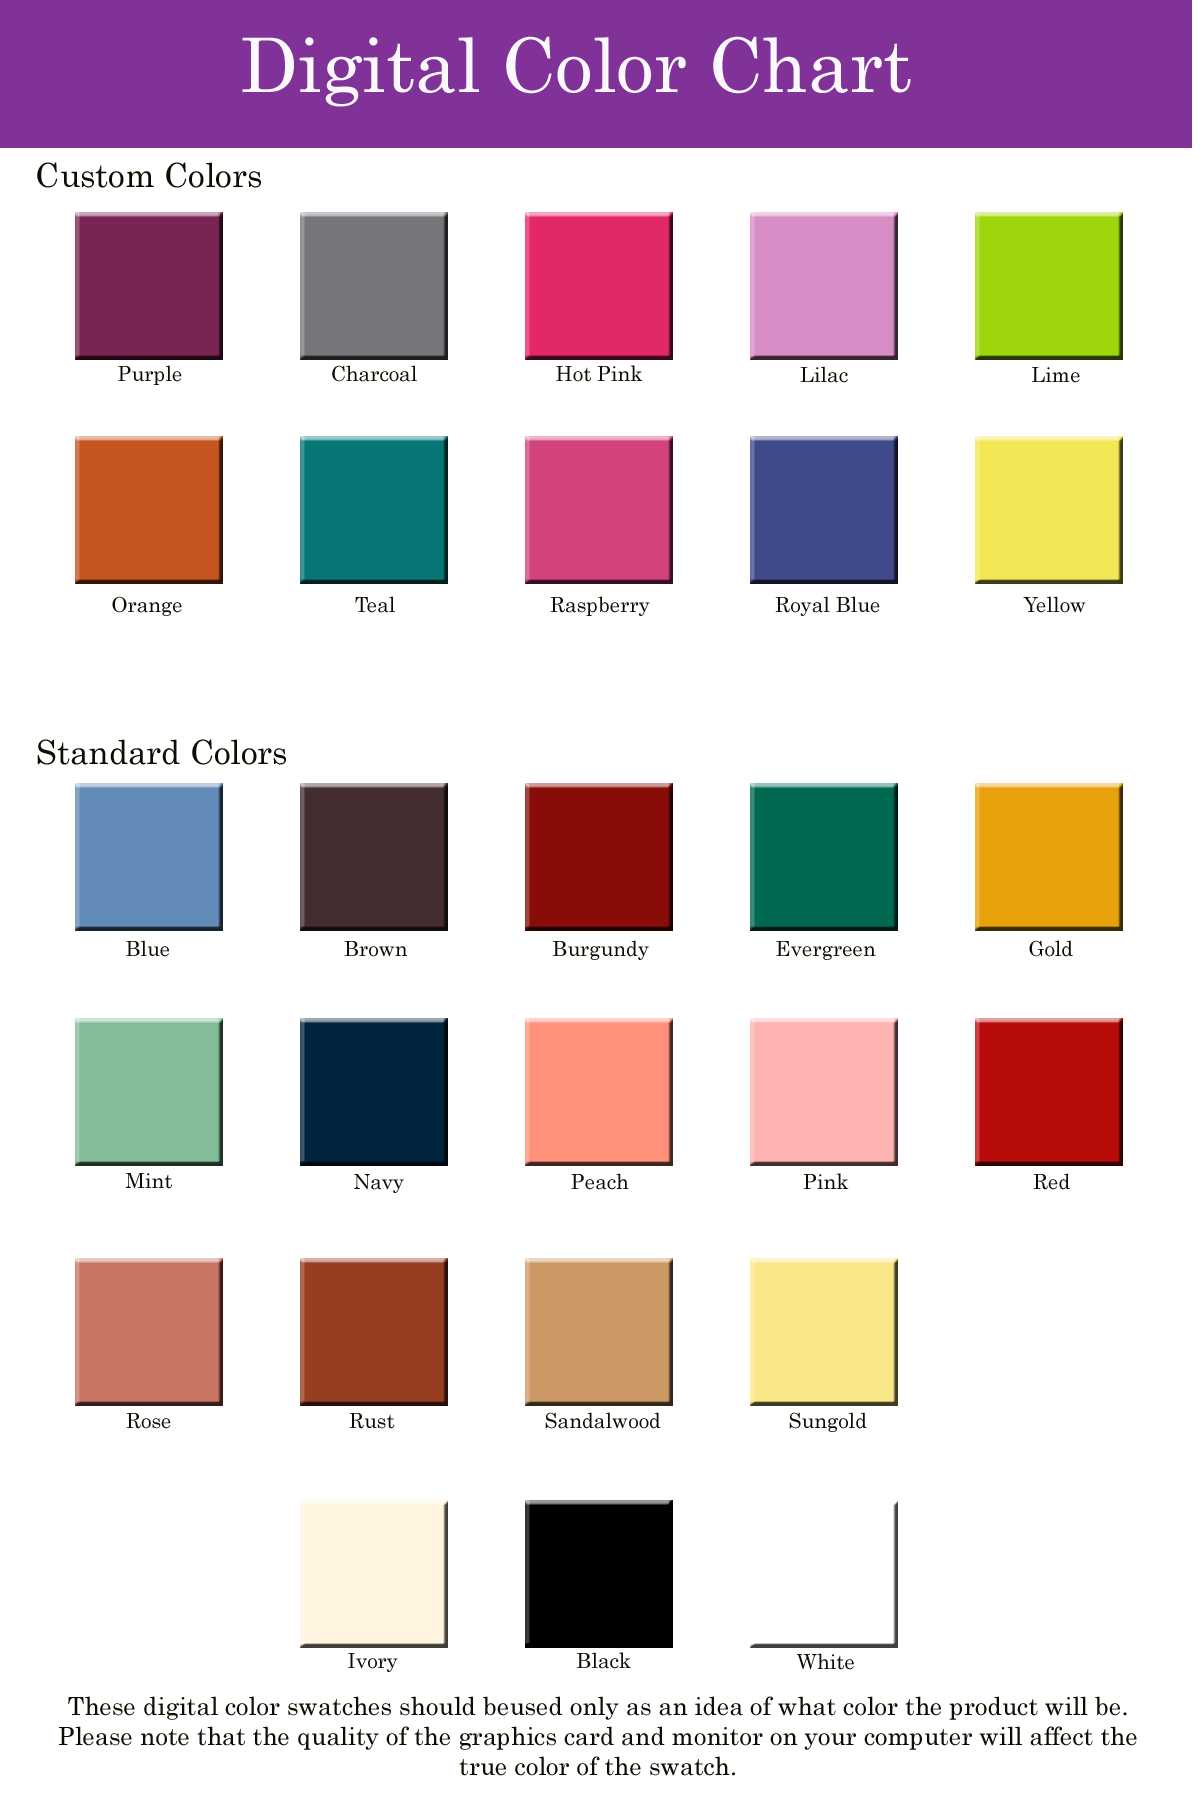 Digital Color Chart